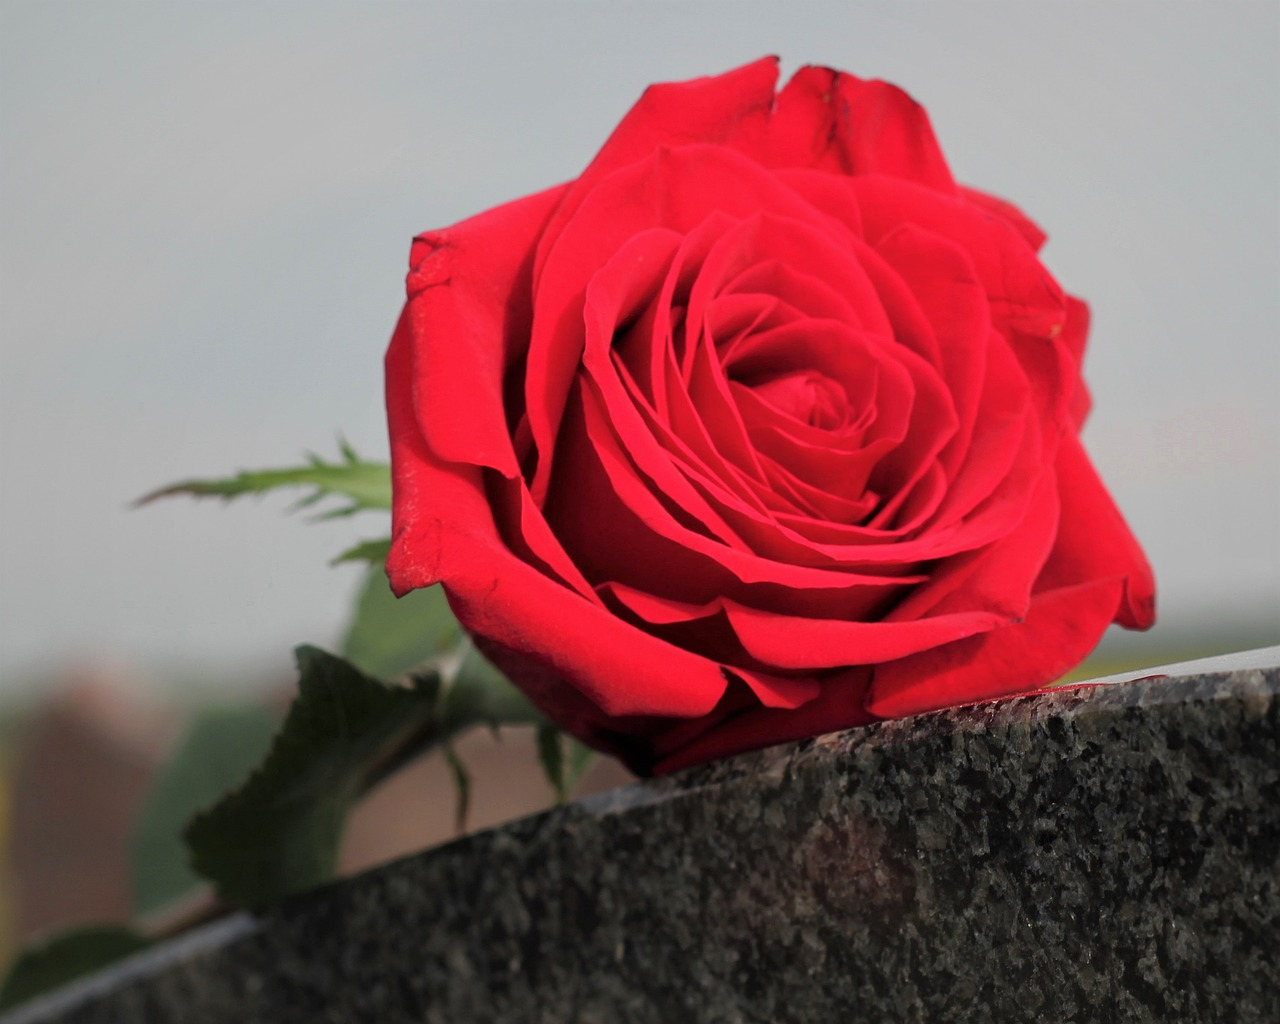 red rose, love symbol, black marble